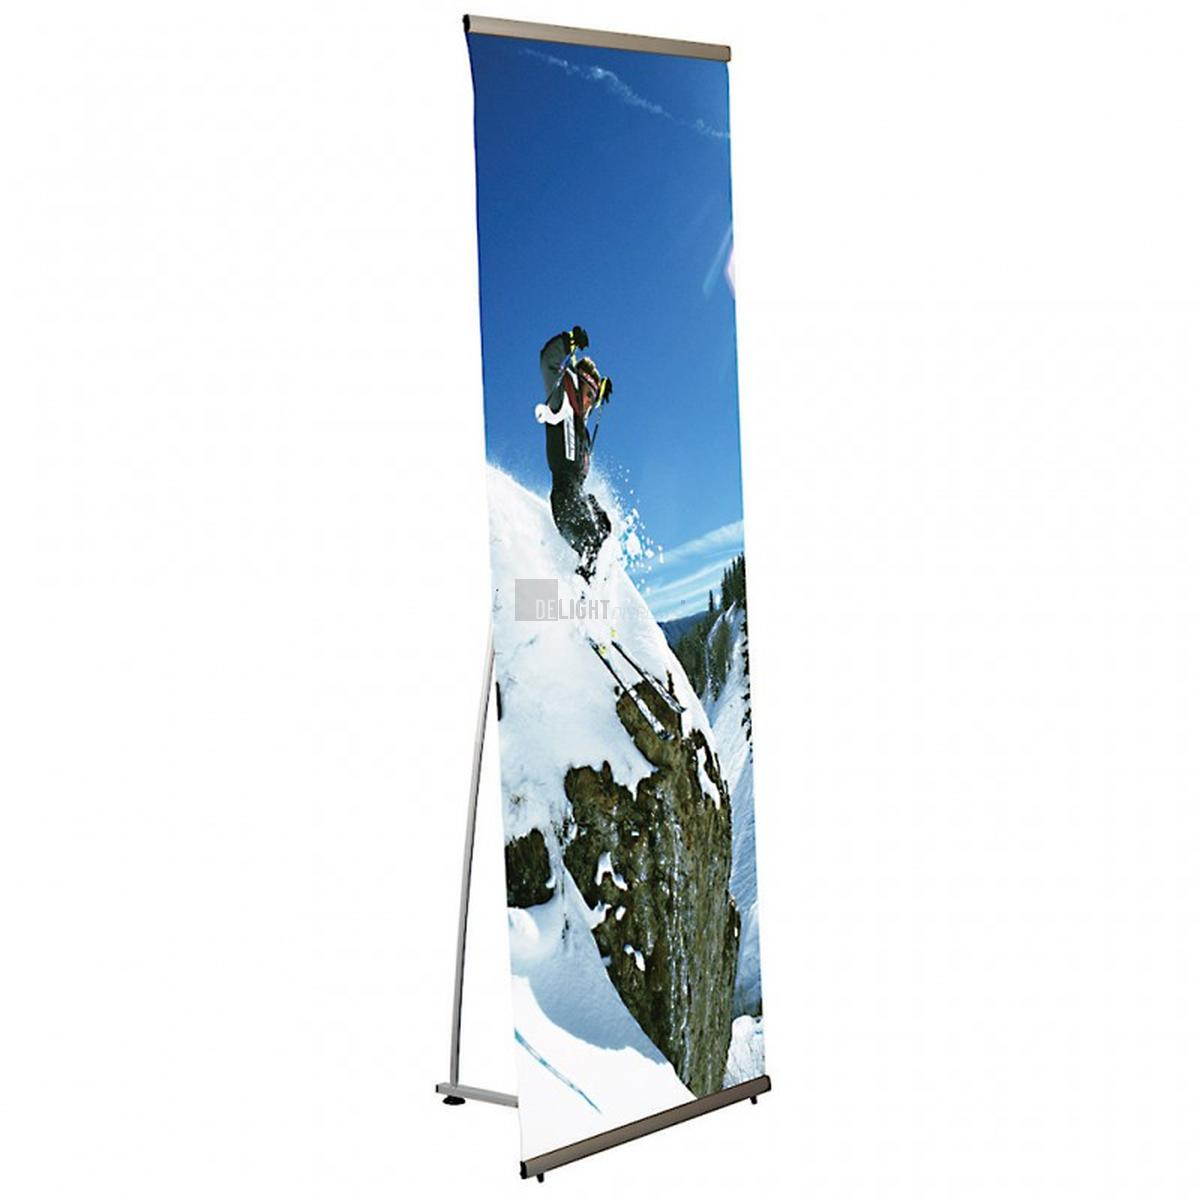 L-Banner Display Snapy 900 x 2000